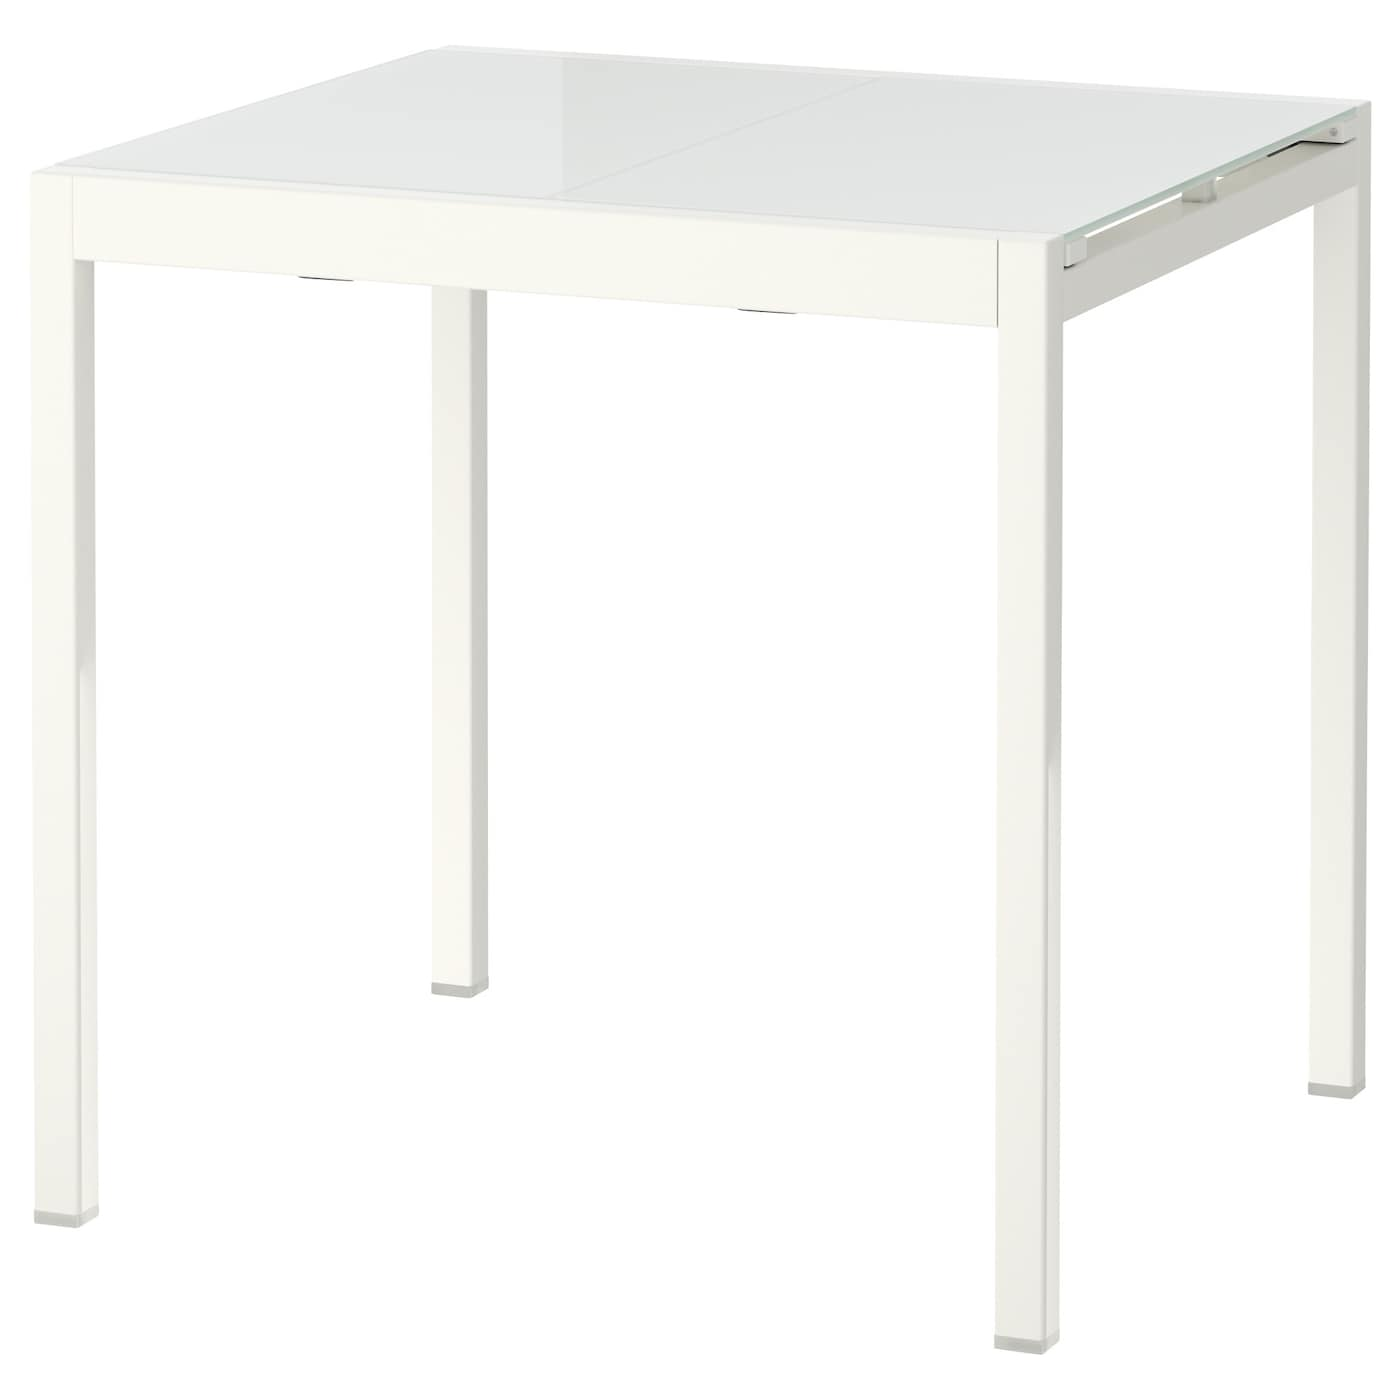 glivarp extendable table white 75 115 x 70 cm ikea. Black Bedroom Furniture Sets. Home Design Ideas